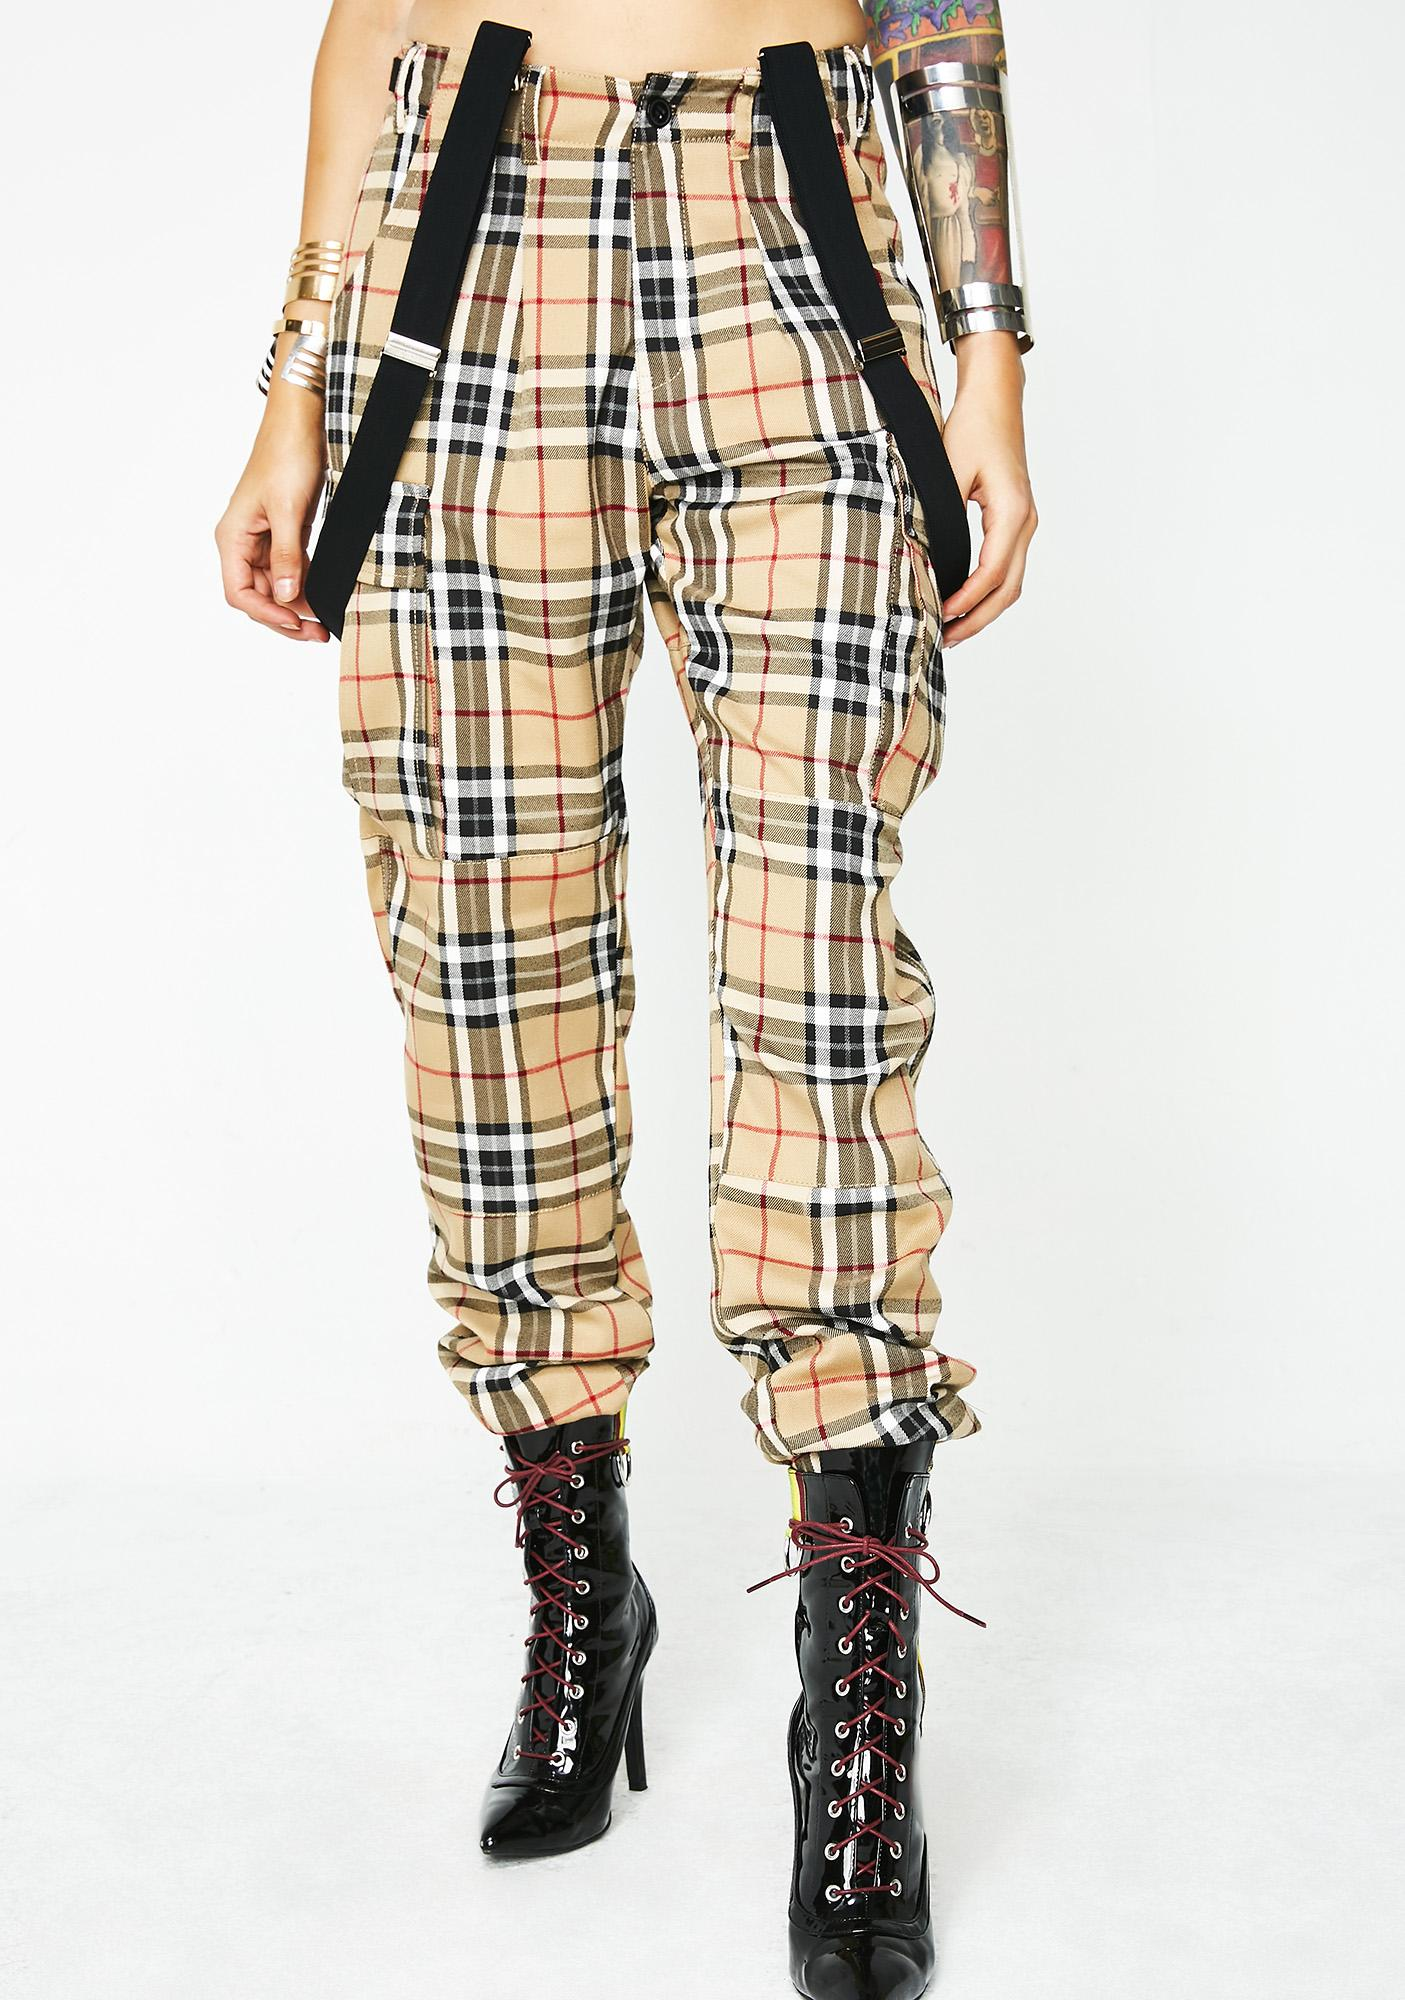 Poster Grl High Classy Cargo Pants